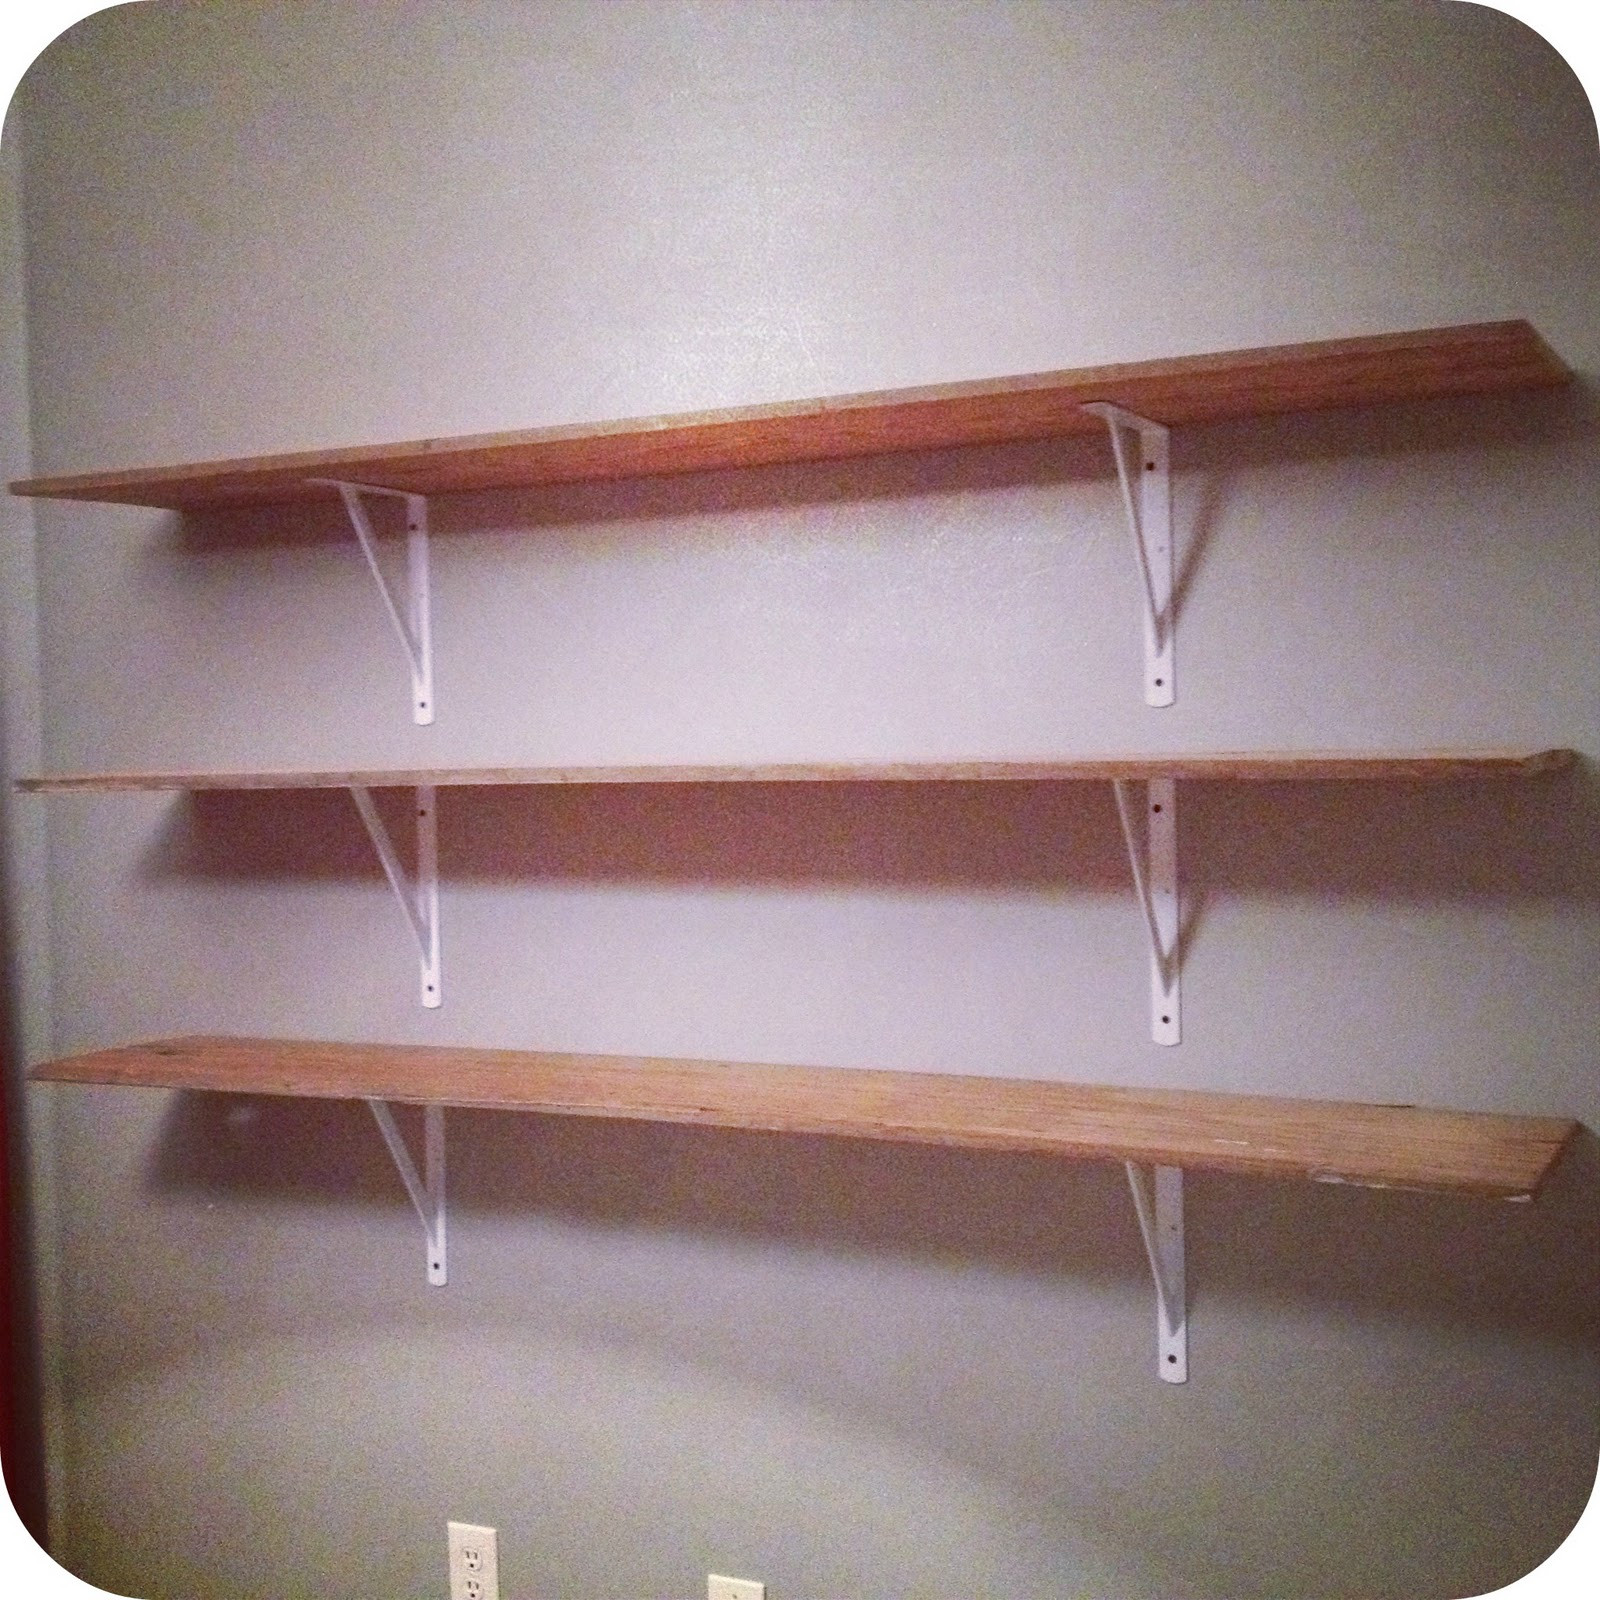 Cheap Shelves Beautiful 58 Cheap Shelf Ideas Inexpensive Wall Shelves Homemade Of Incredible 45 Pictures Cheap Shelves